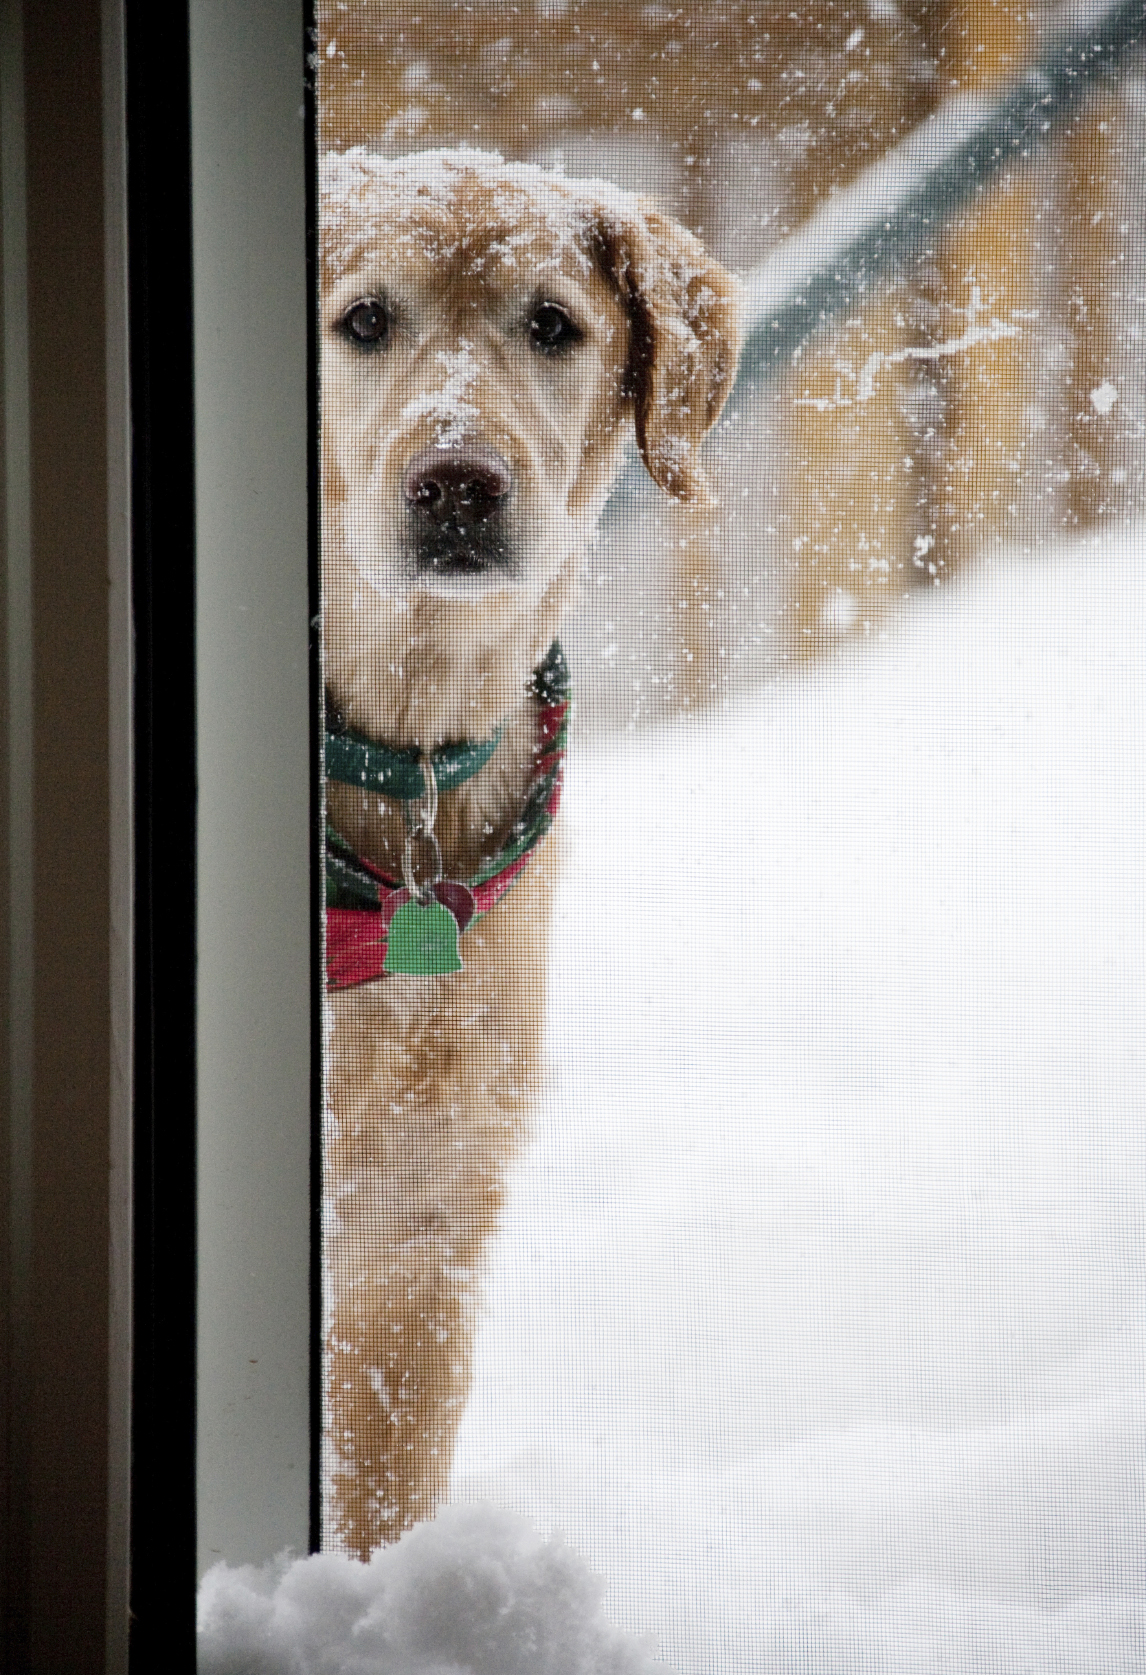 Dog in the snow peaking inside-iStock_000011508085_Medium